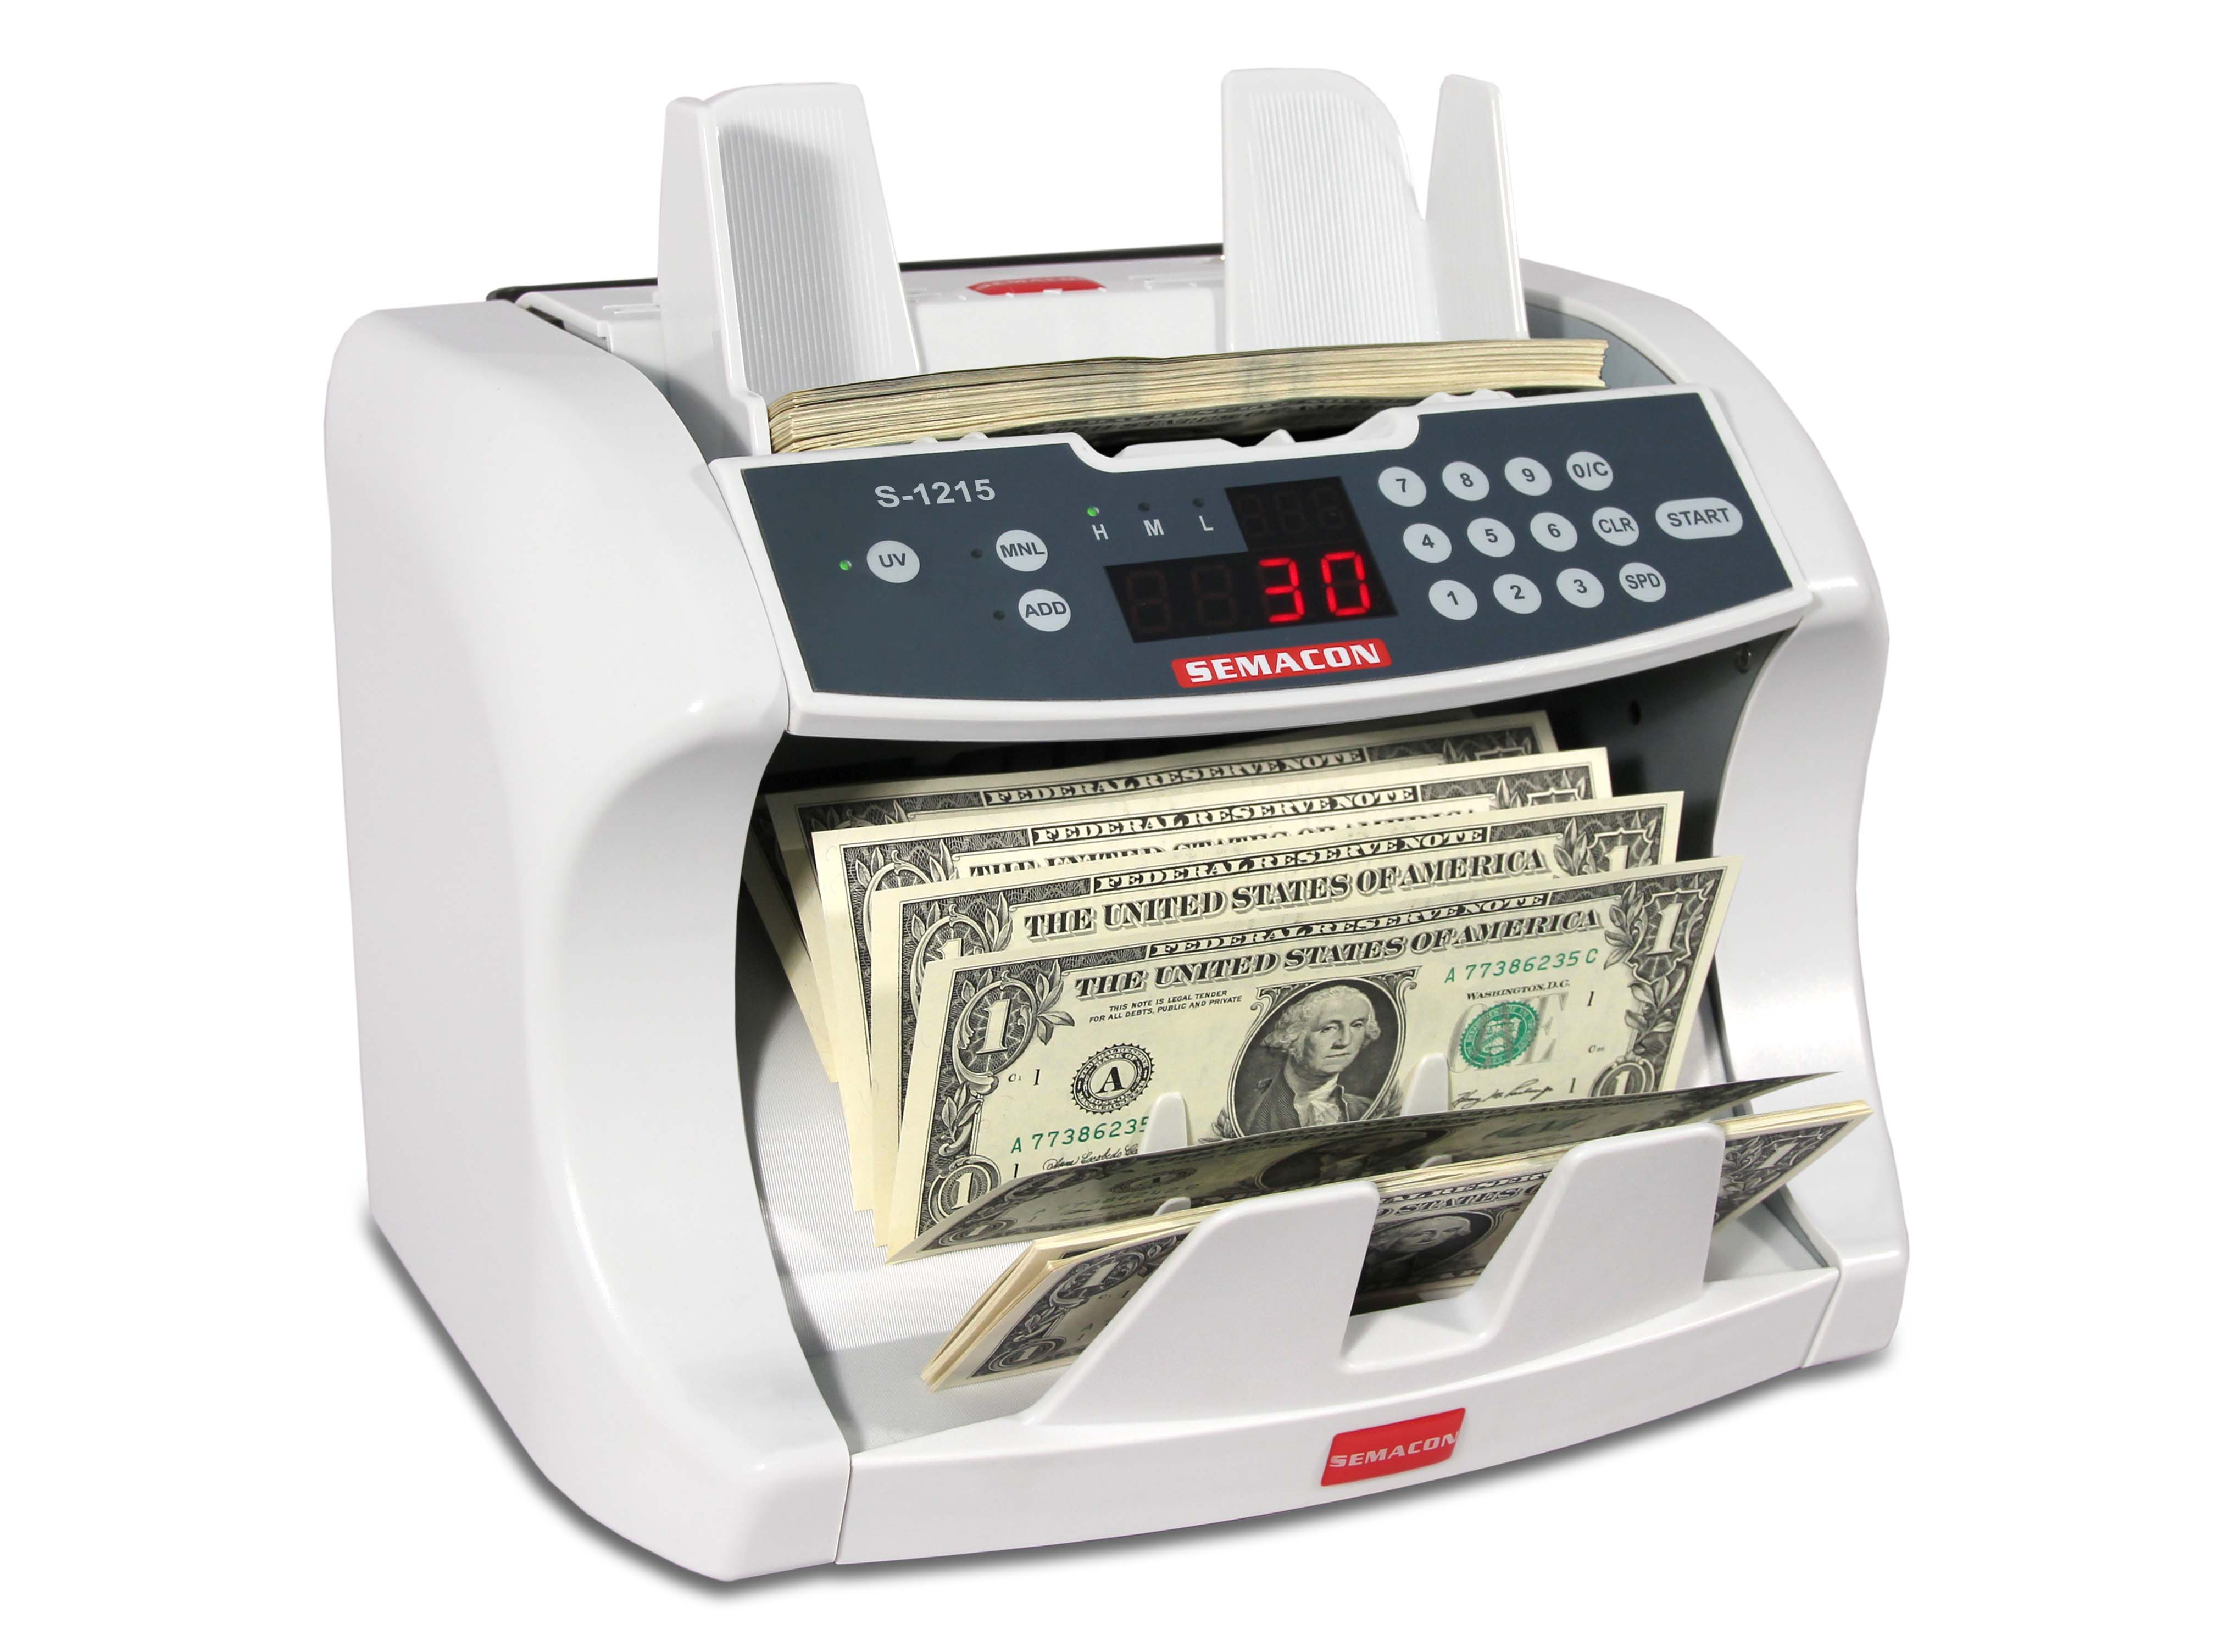 Semacon S-1215 Currency Counter w/ UV Counterfeit Detection